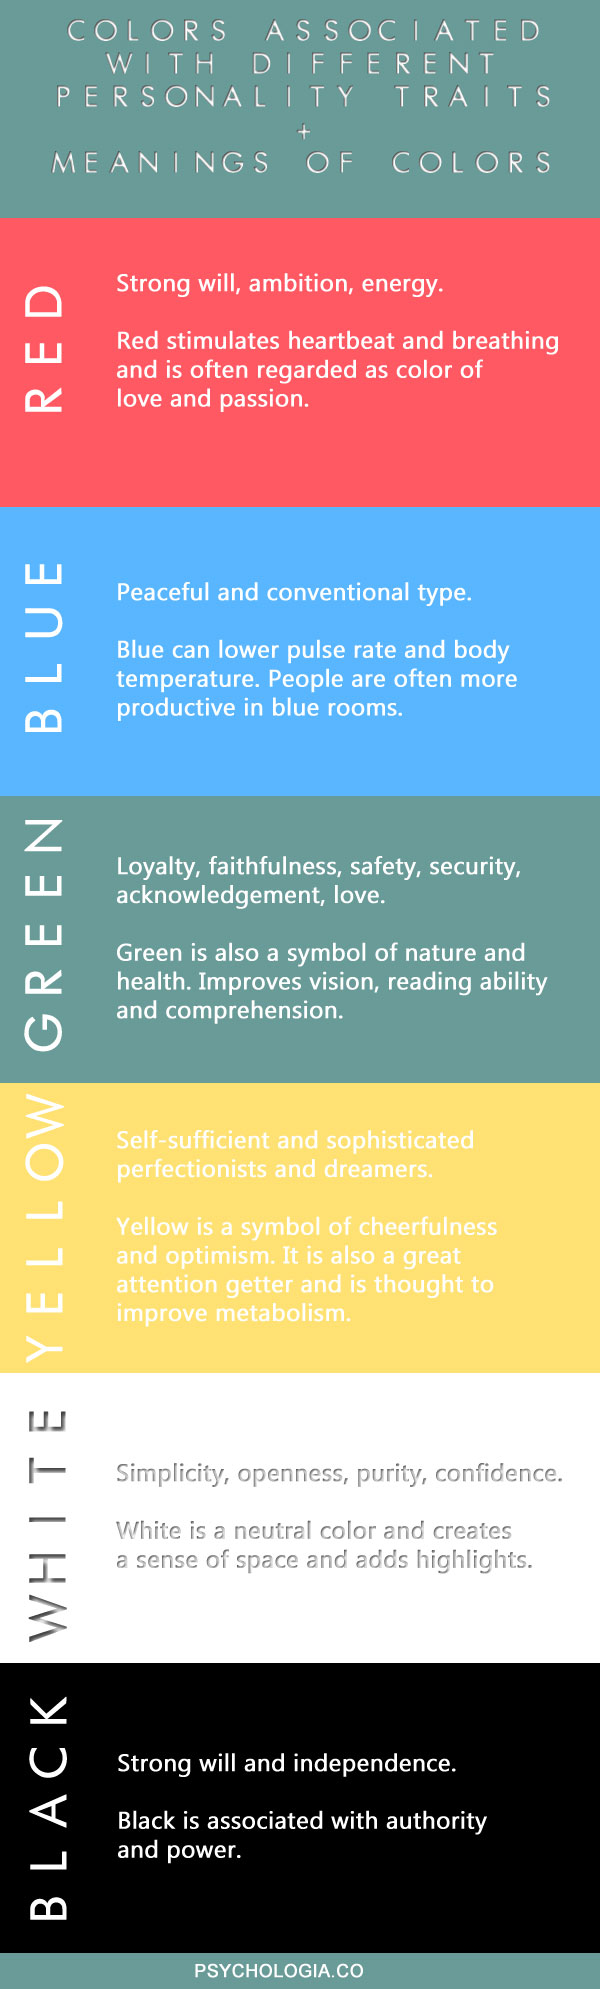 infographic: personality colors and meaning of colors | psychologia